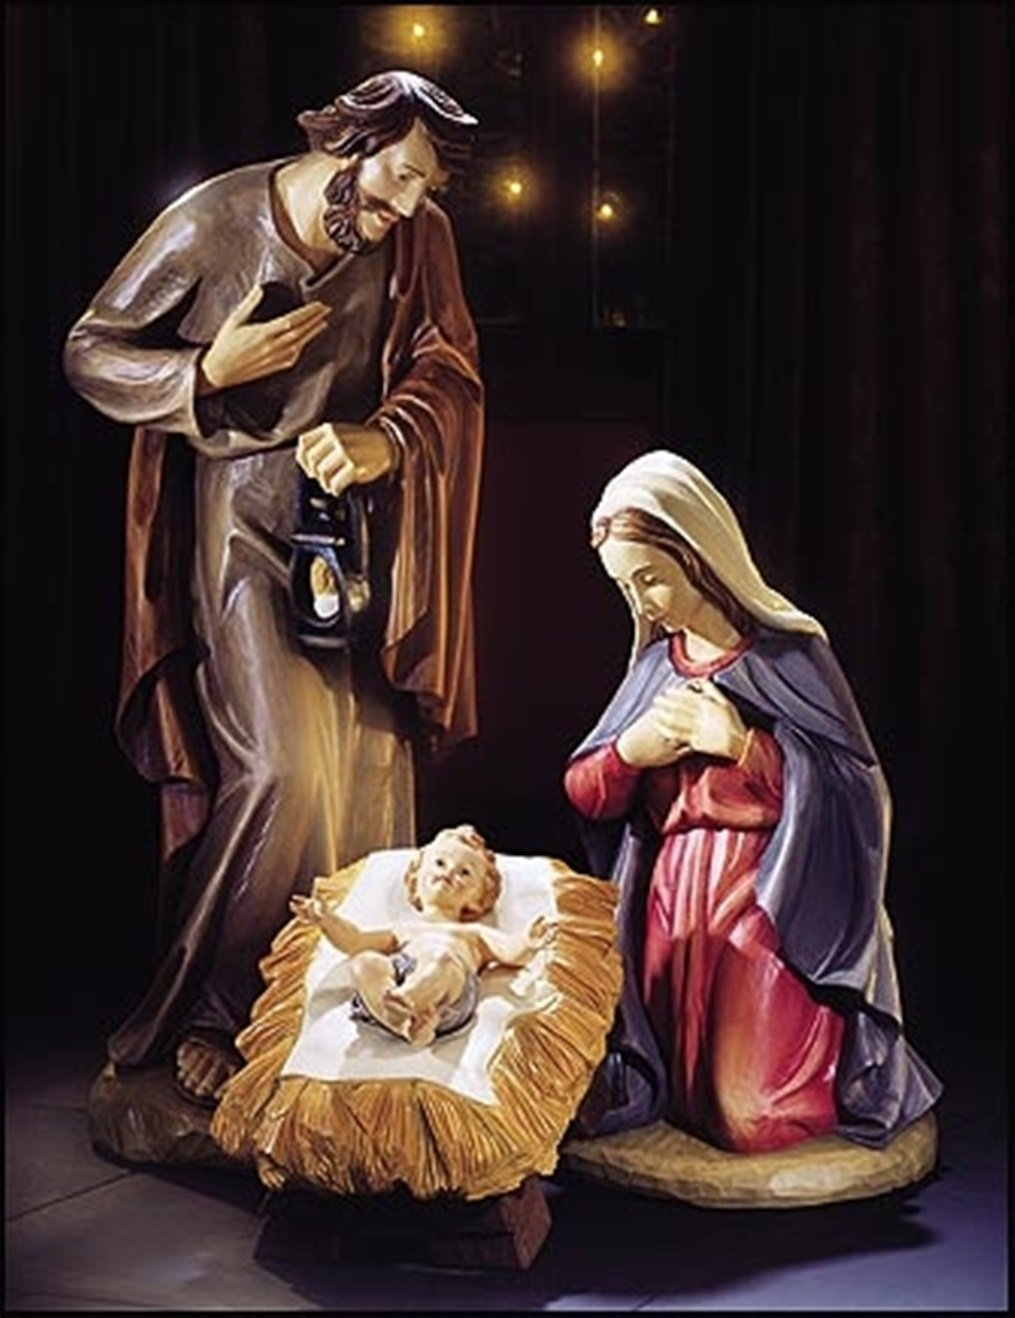 Joseph Mary and Baby Jesus 3 Piece Nativity Set 24'' Statues for Christmas Display